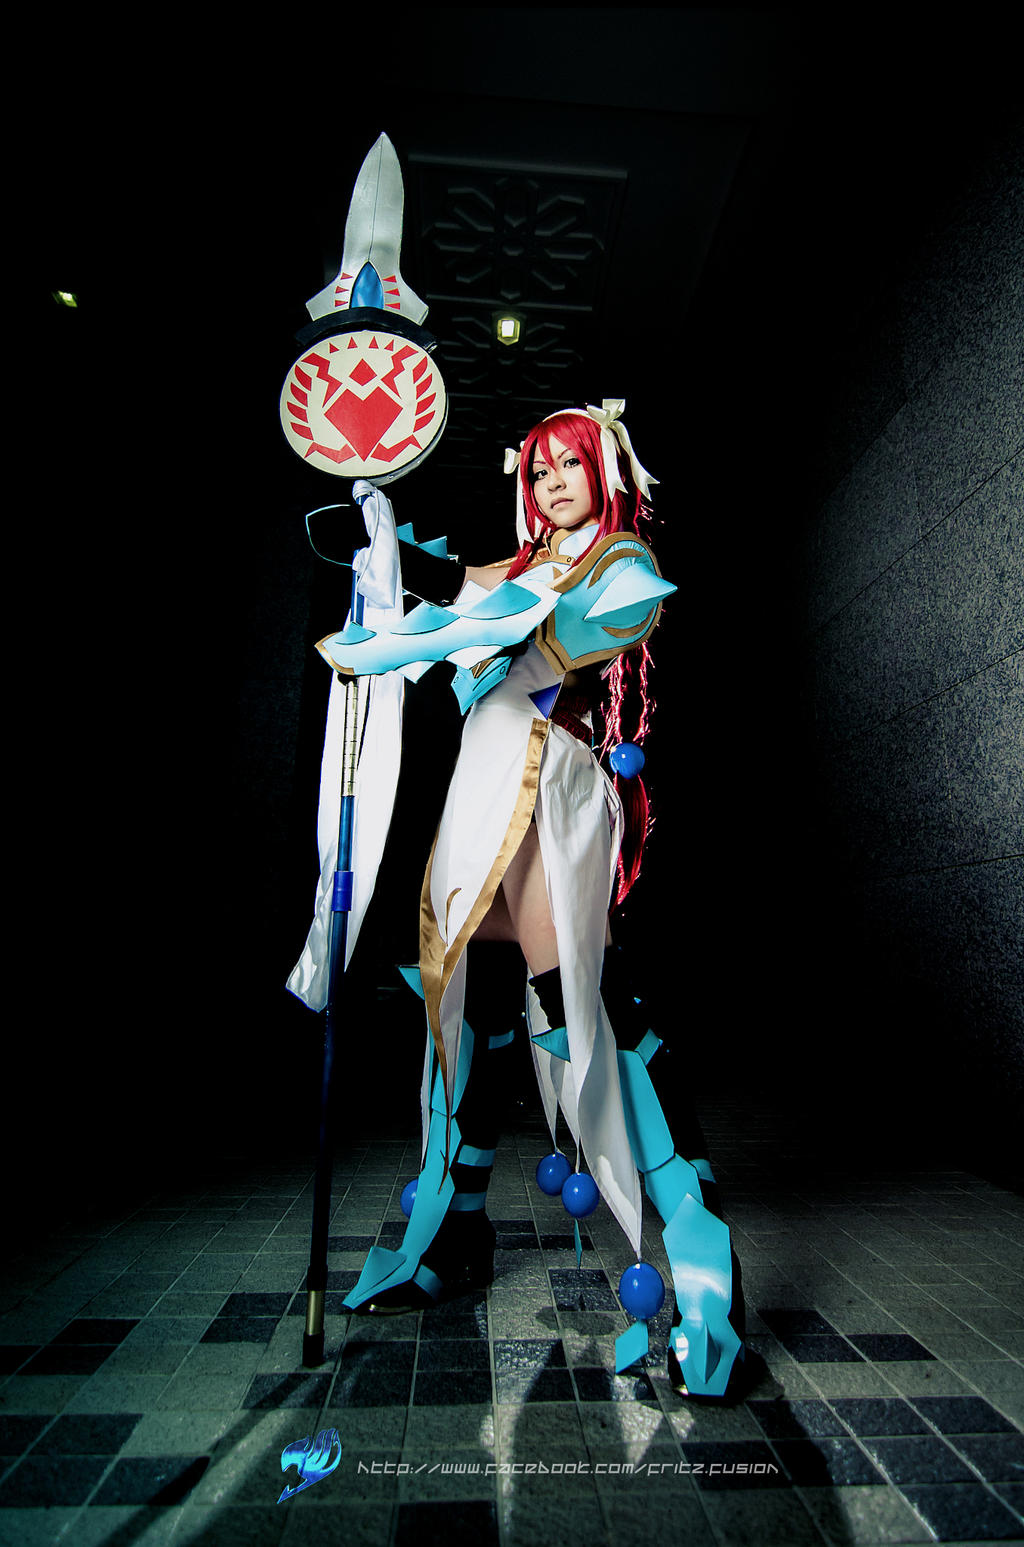 Erza Scarlet, Lightning Empress Armor by fritzfusion